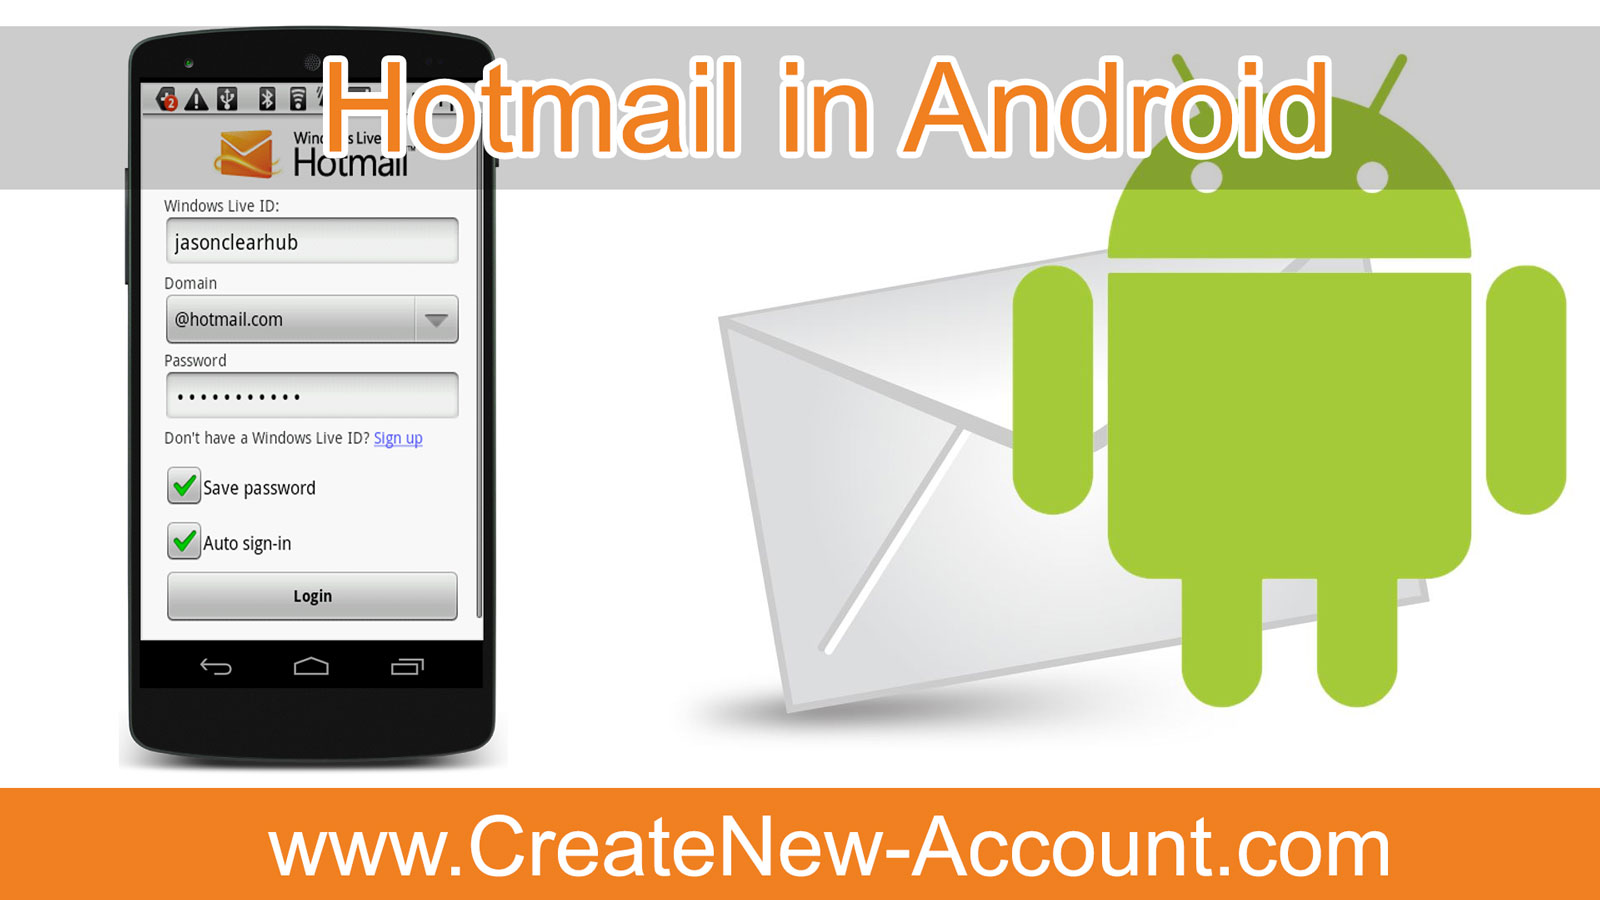 Hotmail in mobile www com sign Hotmail